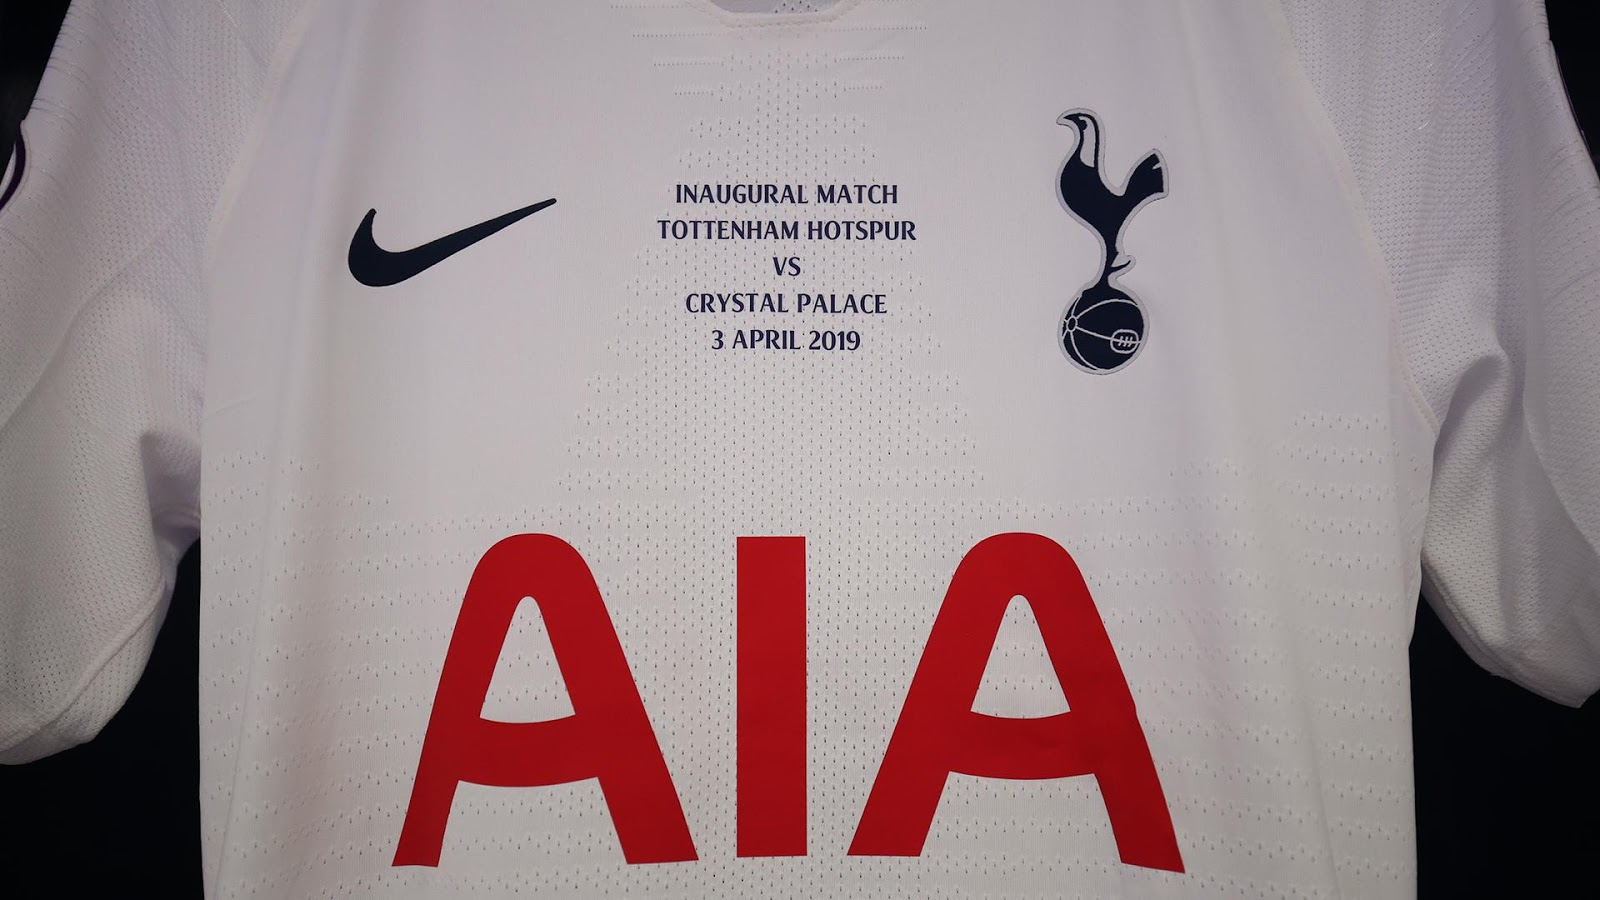 newest 61eac 8f441 Tottenham Releases Kit With Special Print For Inaugural ...